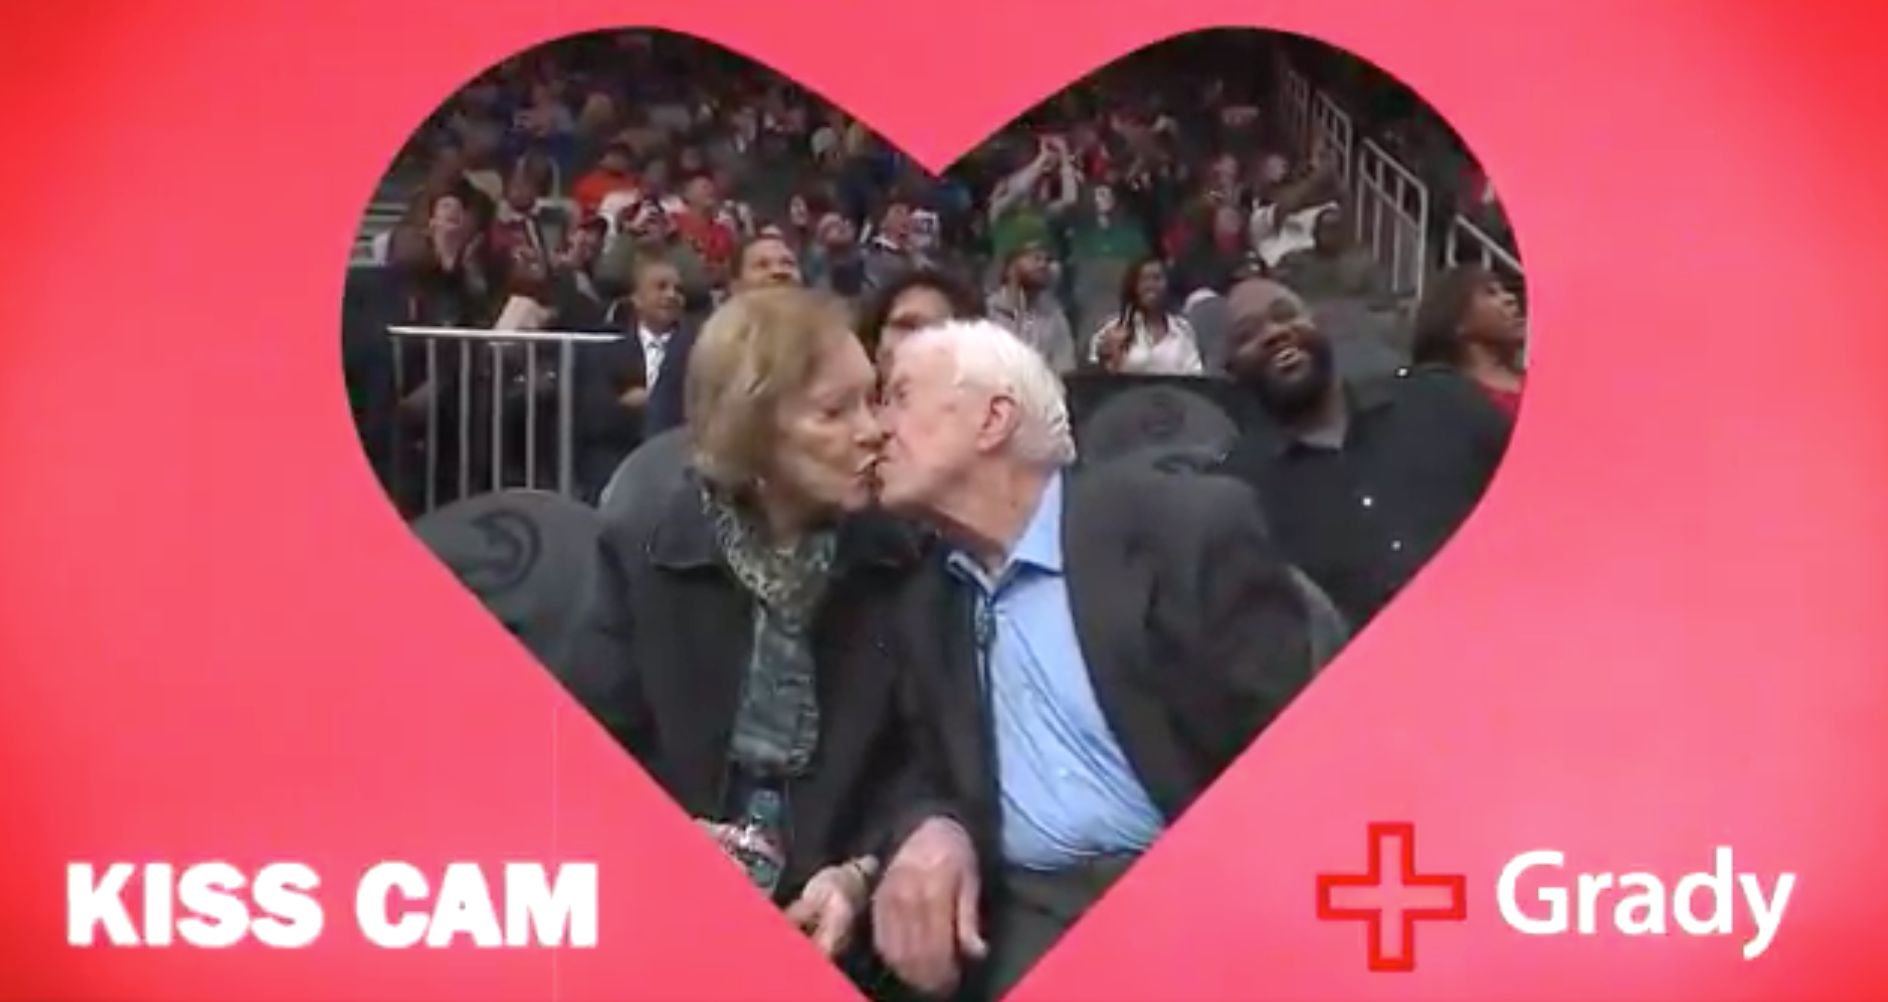 Jimmy Carter Gets Caught On NBA Game Kiss Cam